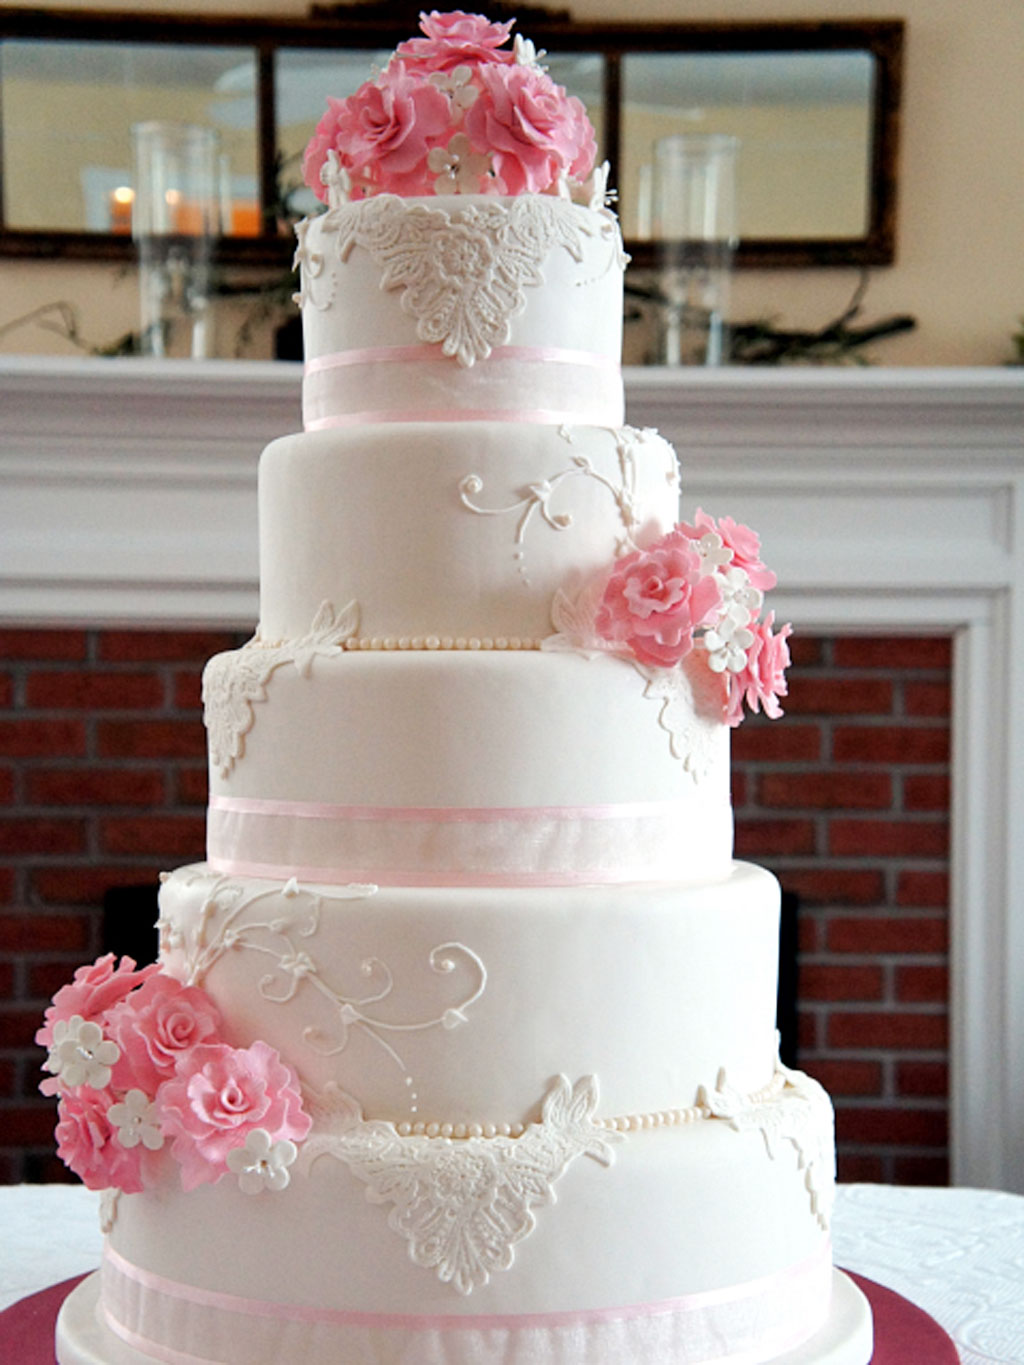 Wedding Cakes Rhode Island Pink Flower Picture In Cake